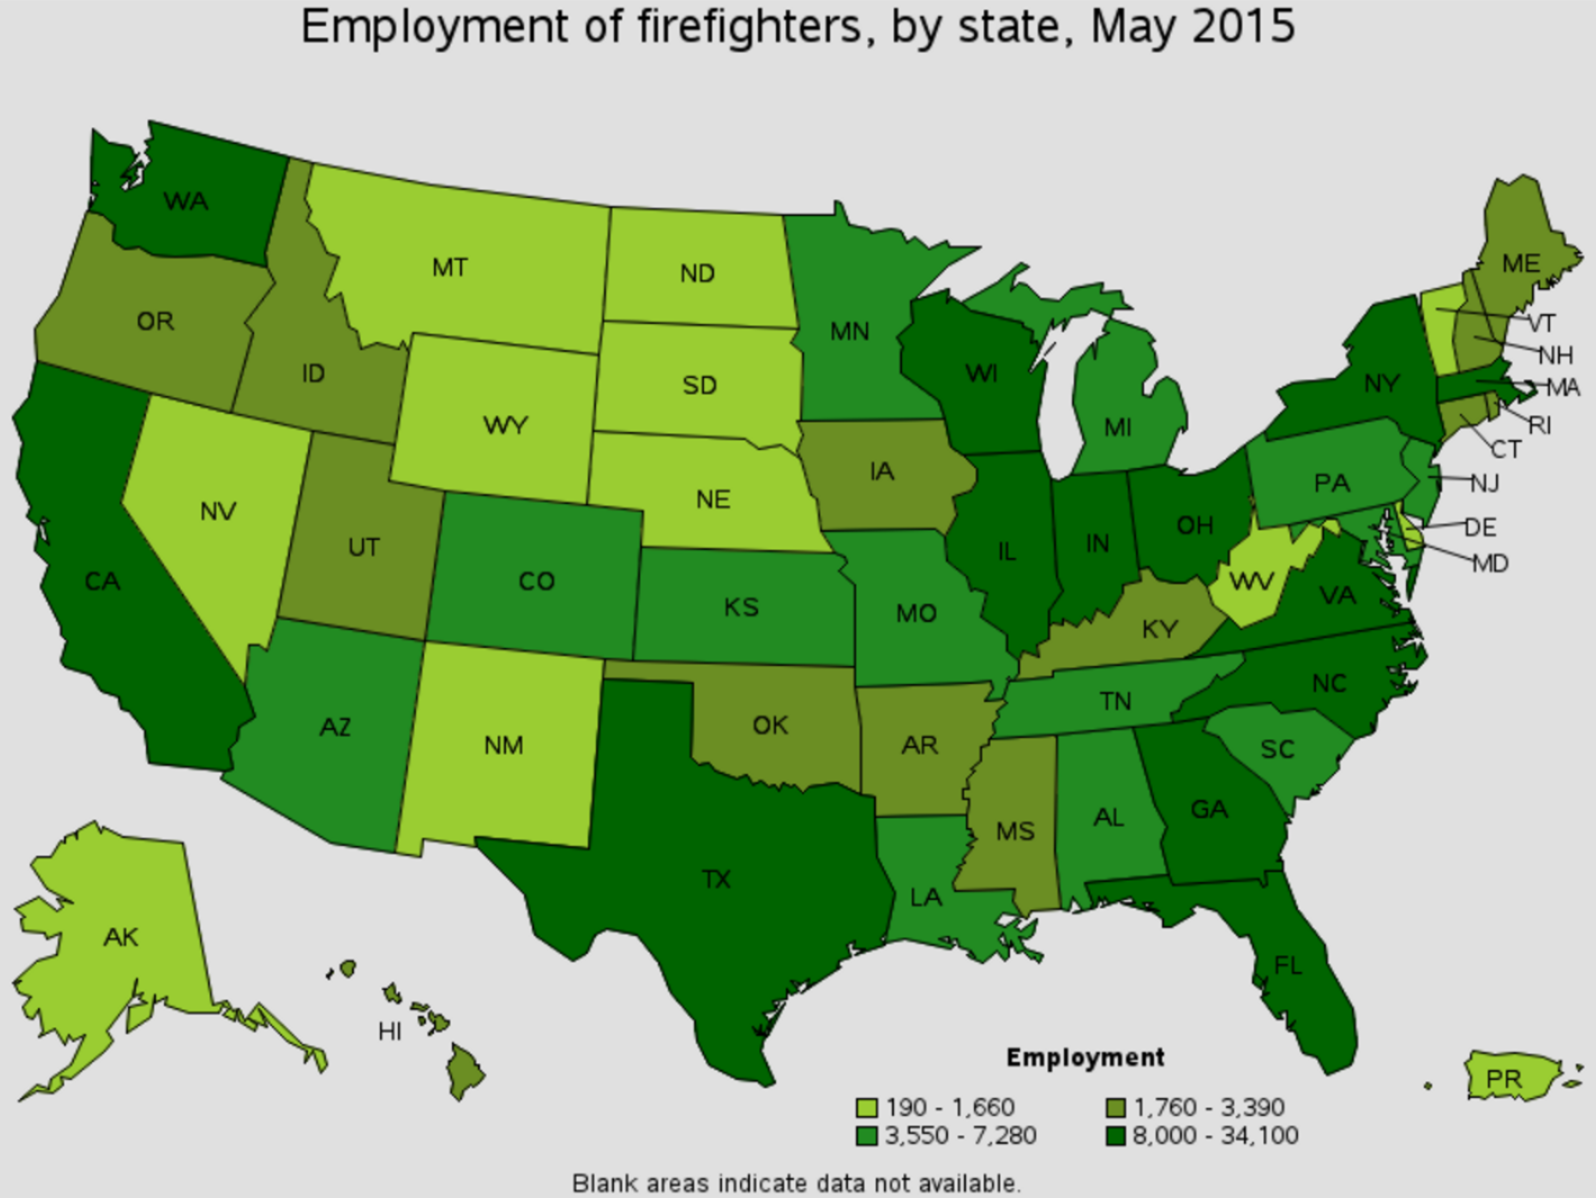 firefighter job outlook by state Weiner Arkansas